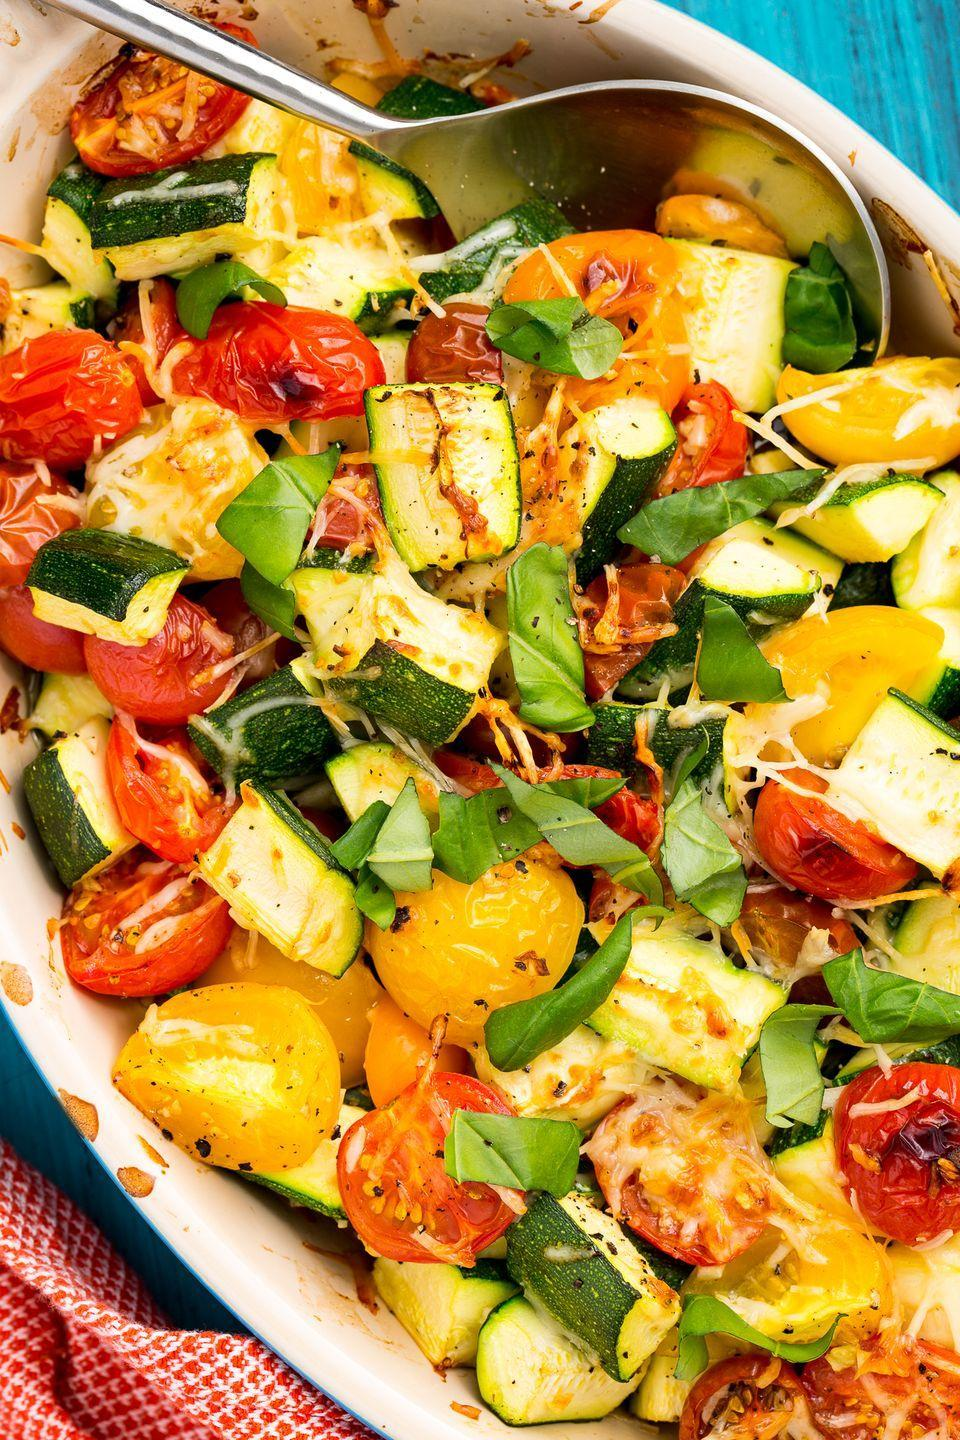 "<p>This easy side is the most delicious way to use up your summer vegetables.</p><p>Get the recipe from <a href=""https://www.delish.com/cooking/recipe-ideas/recipes/a47357/zucchini-tomato-bake-recipe/"" rel=""nofollow noopener"" target=""_blank"" data-ylk=""slk:Delish"" class=""link rapid-noclick-resp"">Delish</a>.</p>"